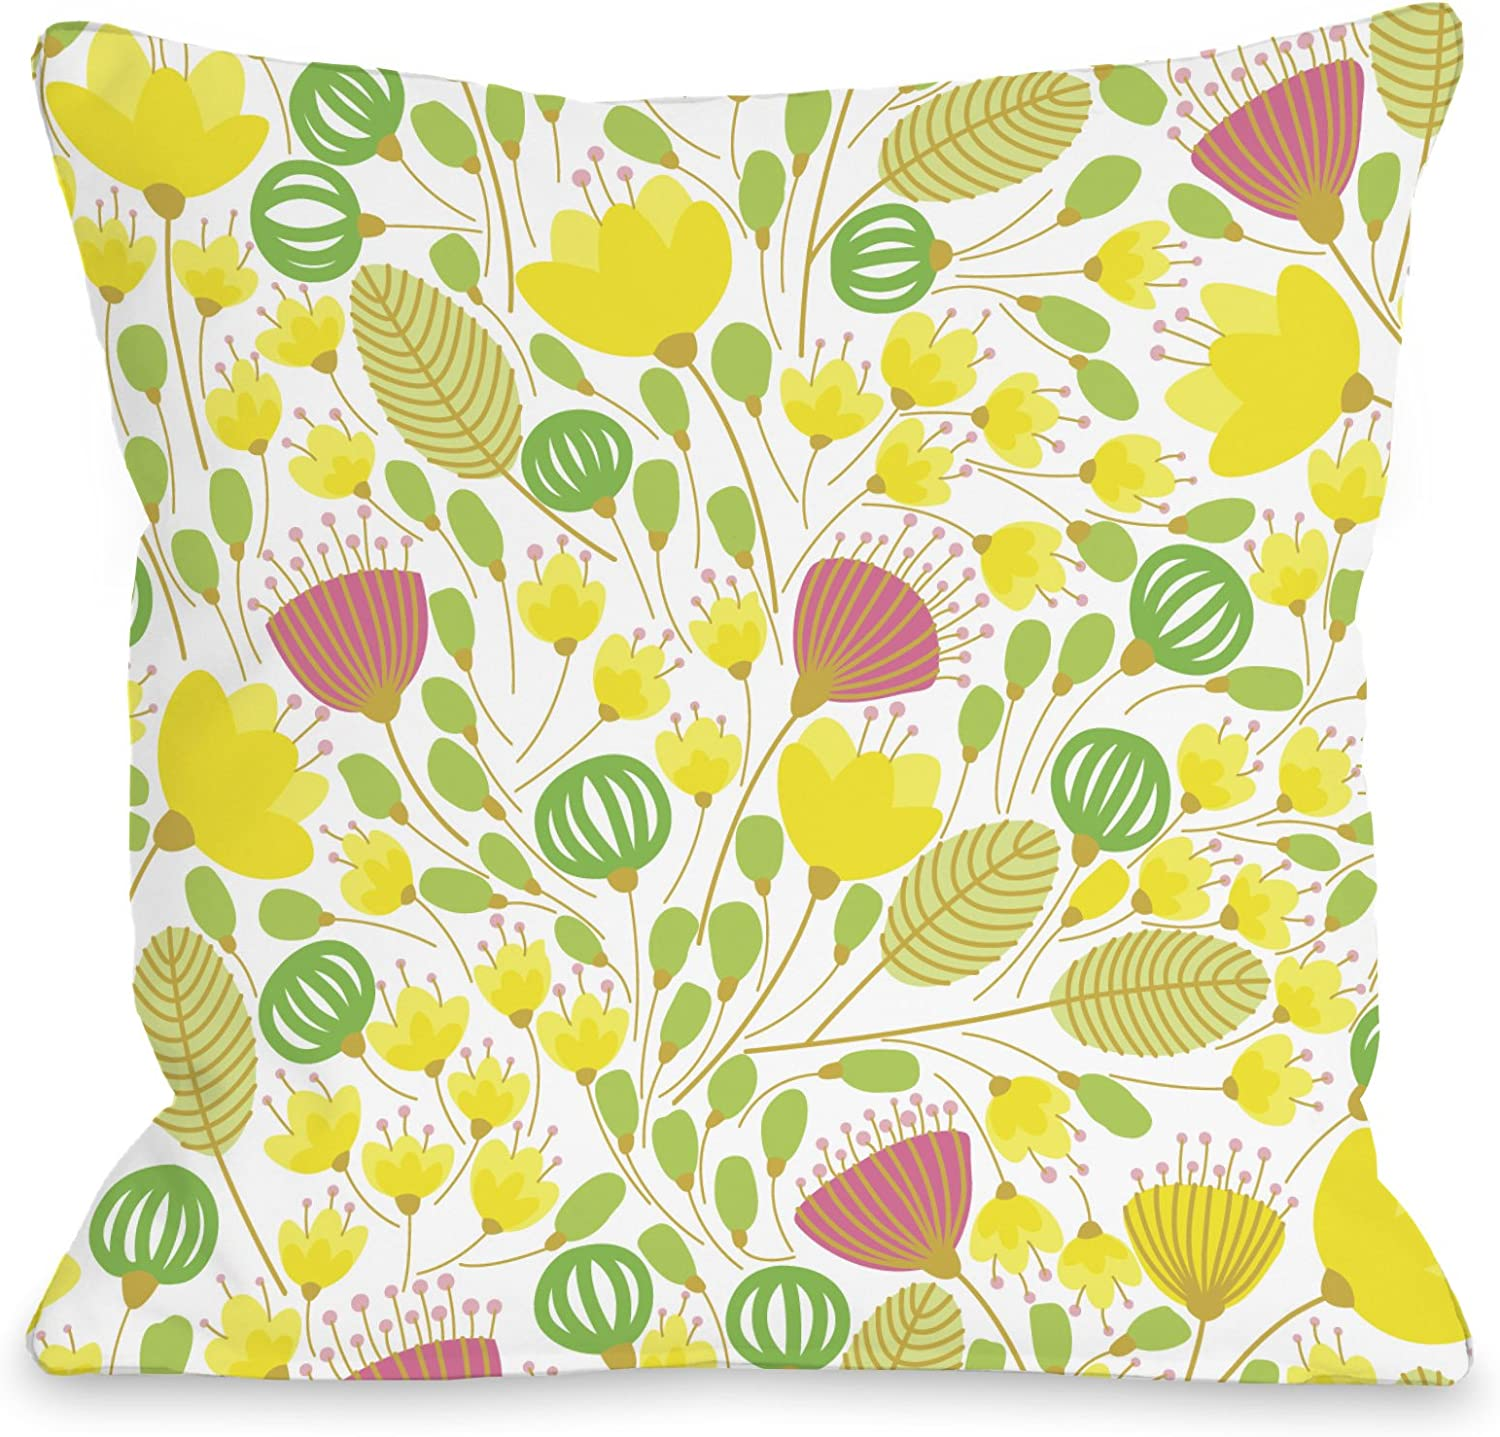 Bentin Home Decor 12423pl18c Playful Summer Afternoon Pillow Cover Multi 18 By 18 Inch Amazon Ca Home Kitchen